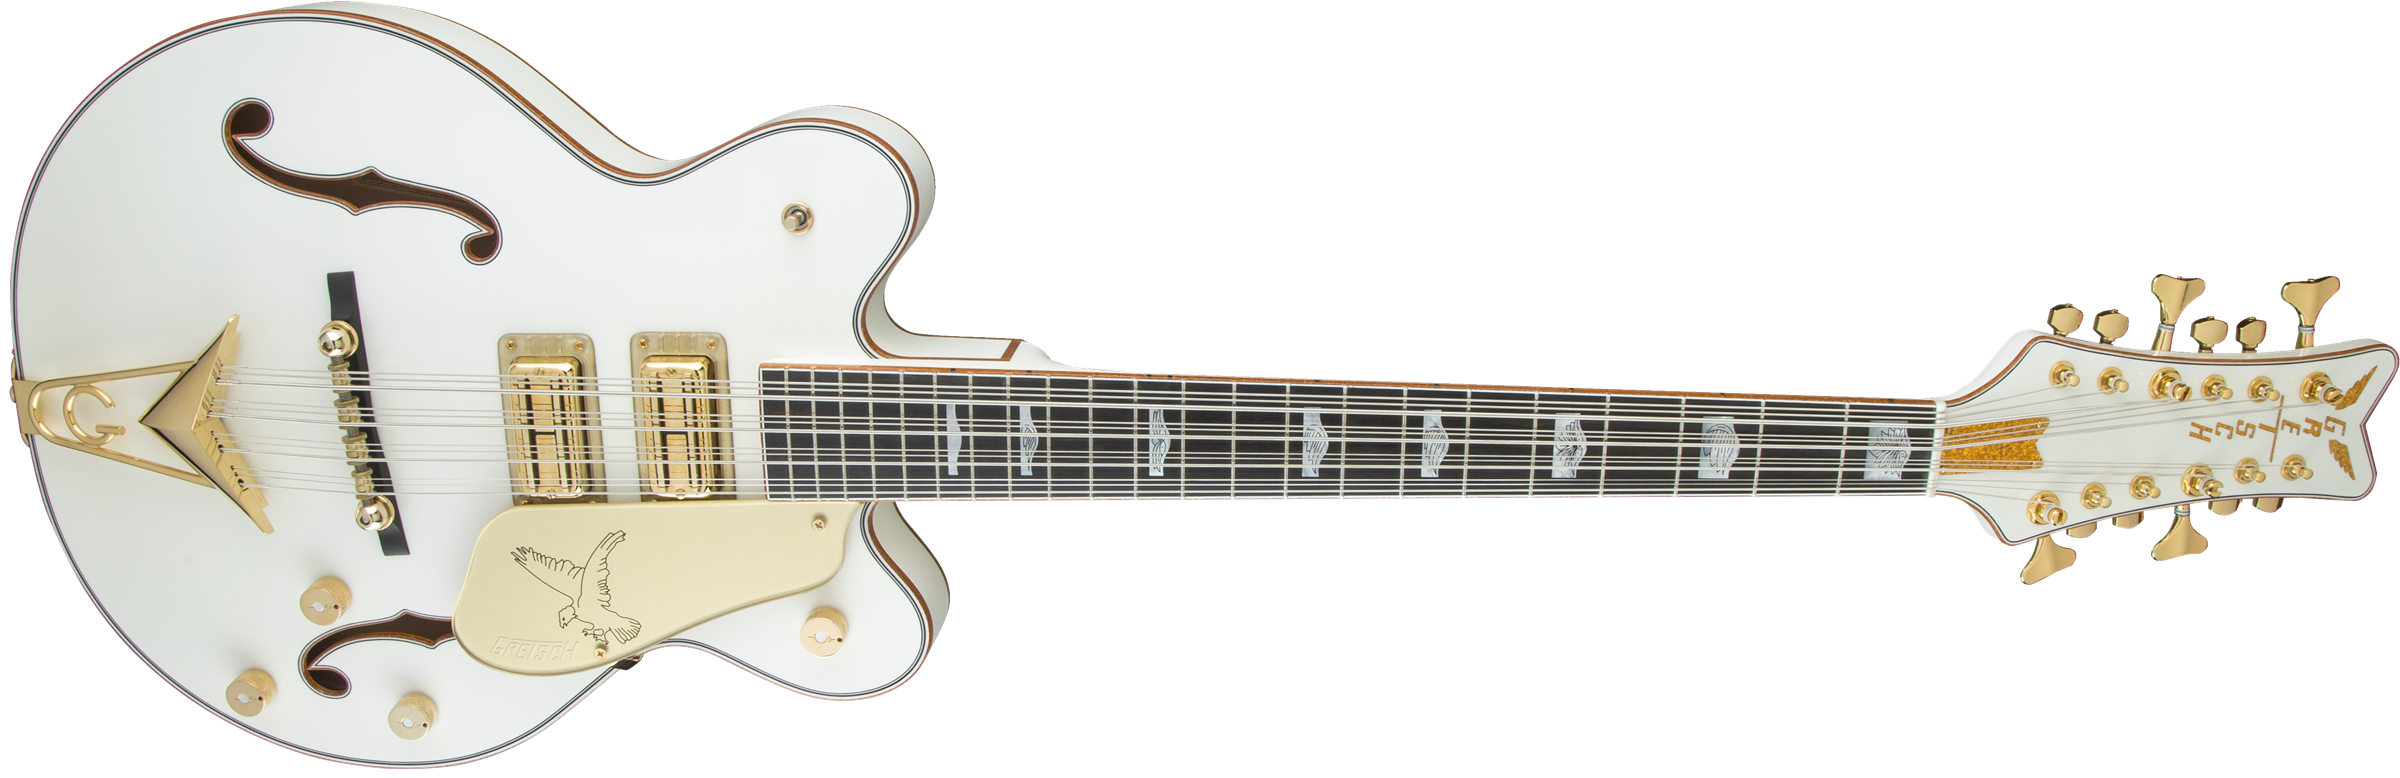 bass g6136b tp12 custom shop tom petersson signature white falcon Used 12 String Bass local dealers online dealers